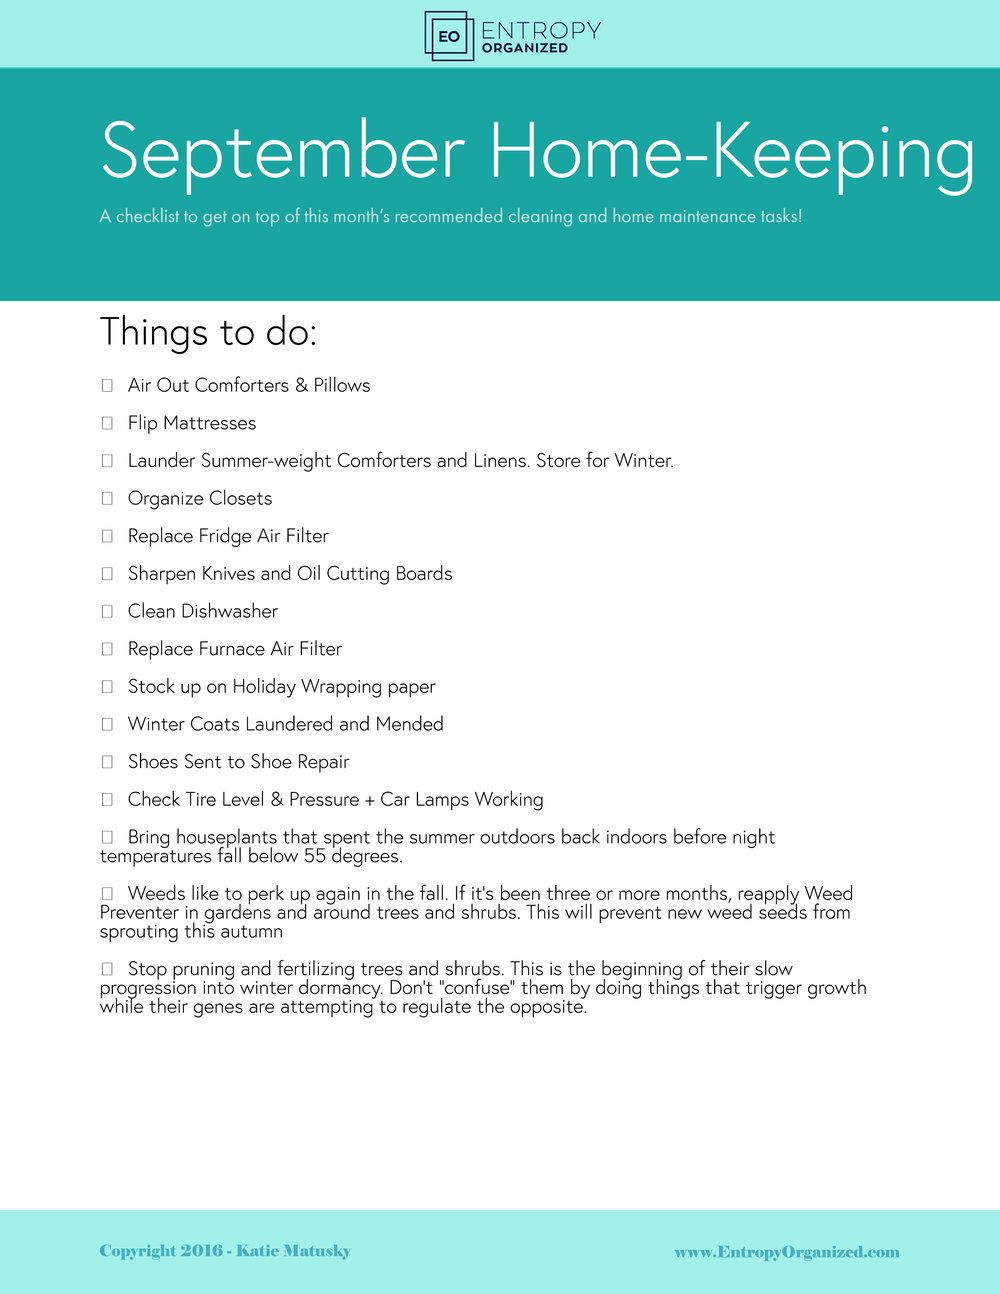 September Cleaning & Home Maintenance.jpg